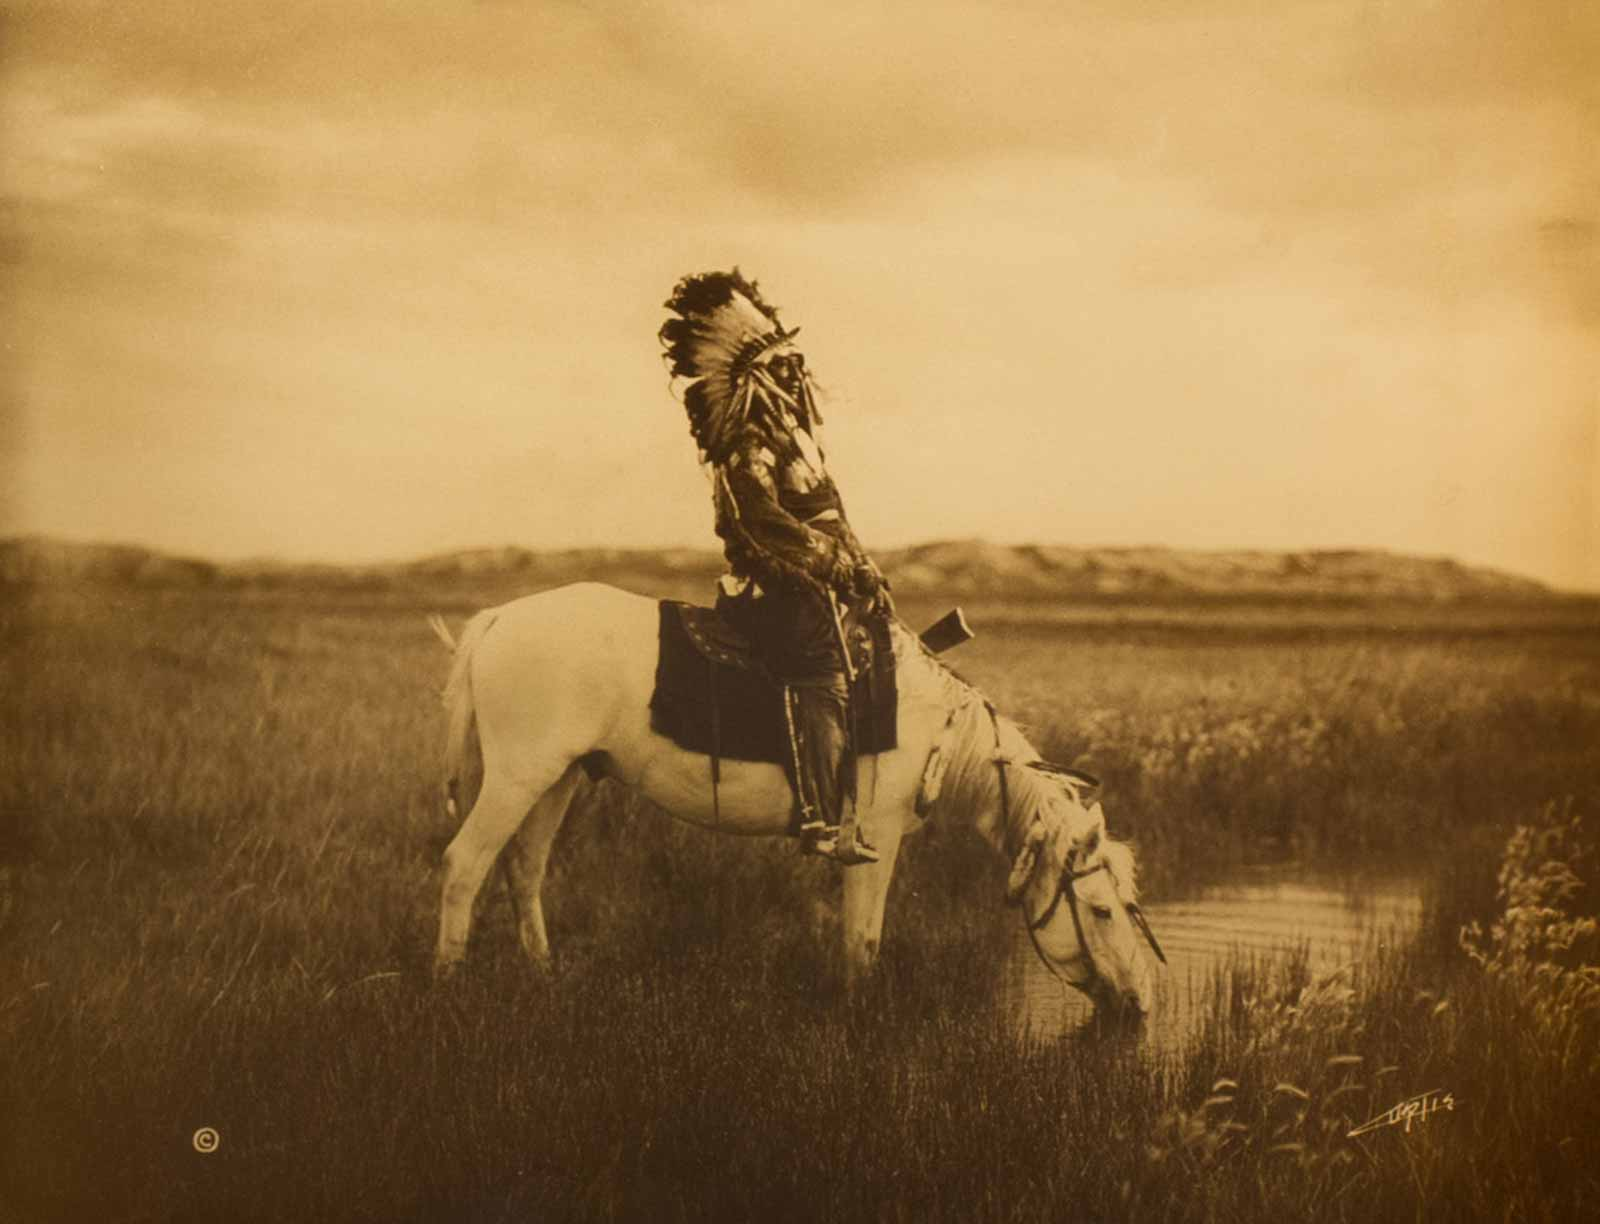 Photogravure - An Oasis in the Badlands - Sioux